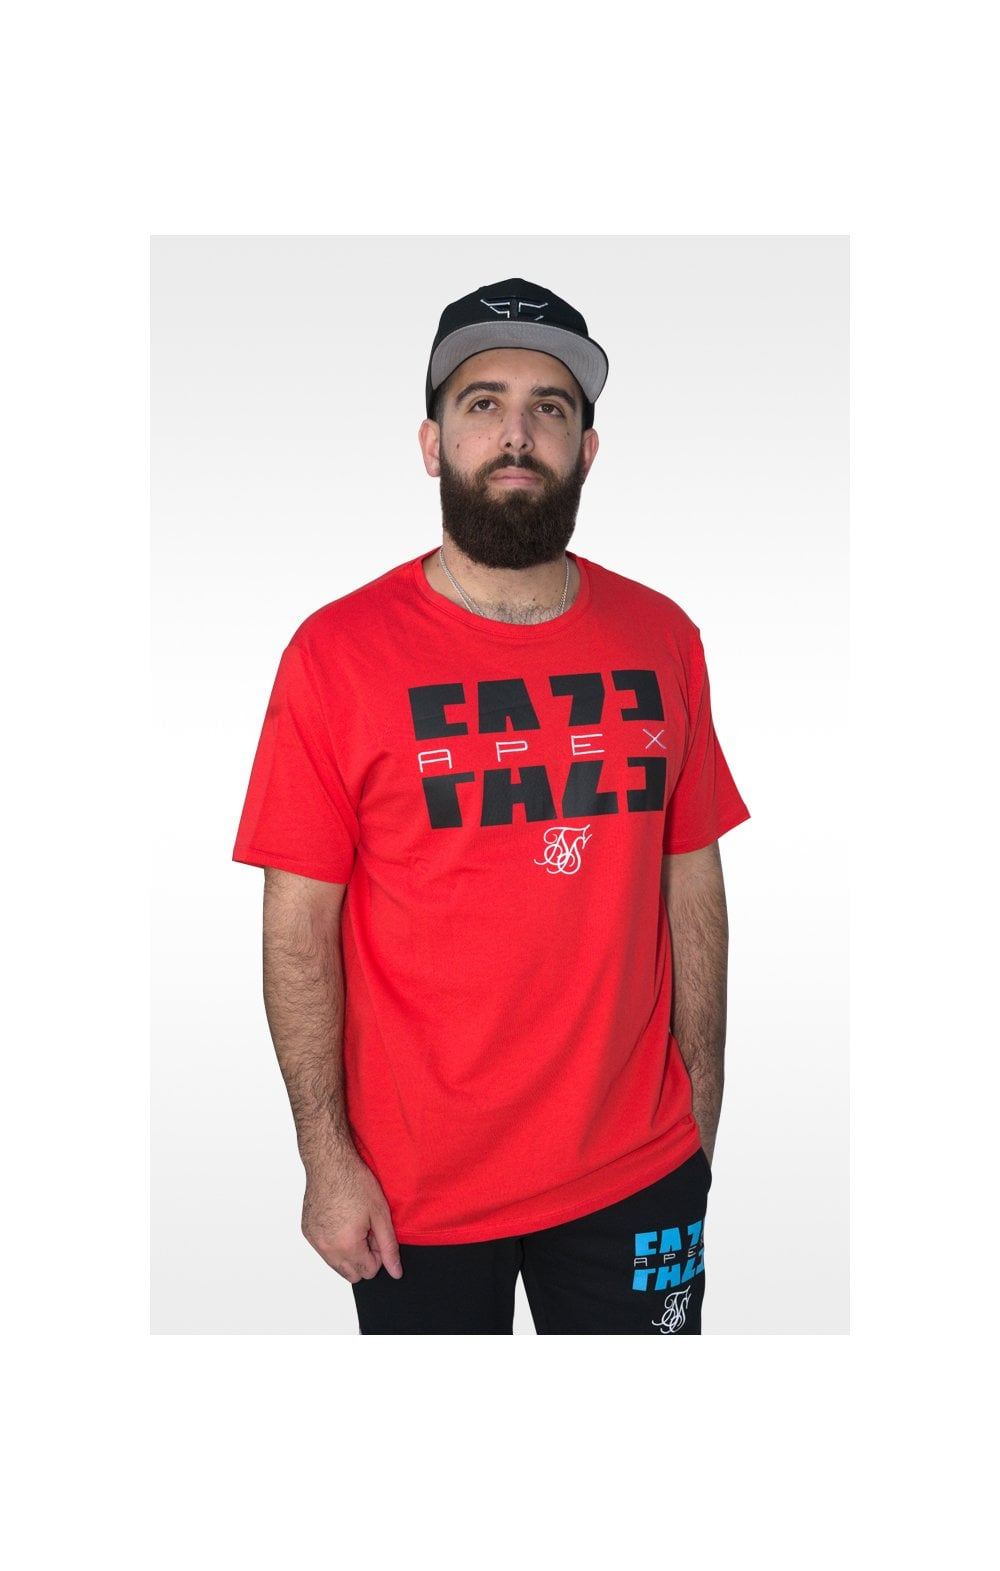 SikSilk x FaZe Apex Standard Square Hem Tee - Red